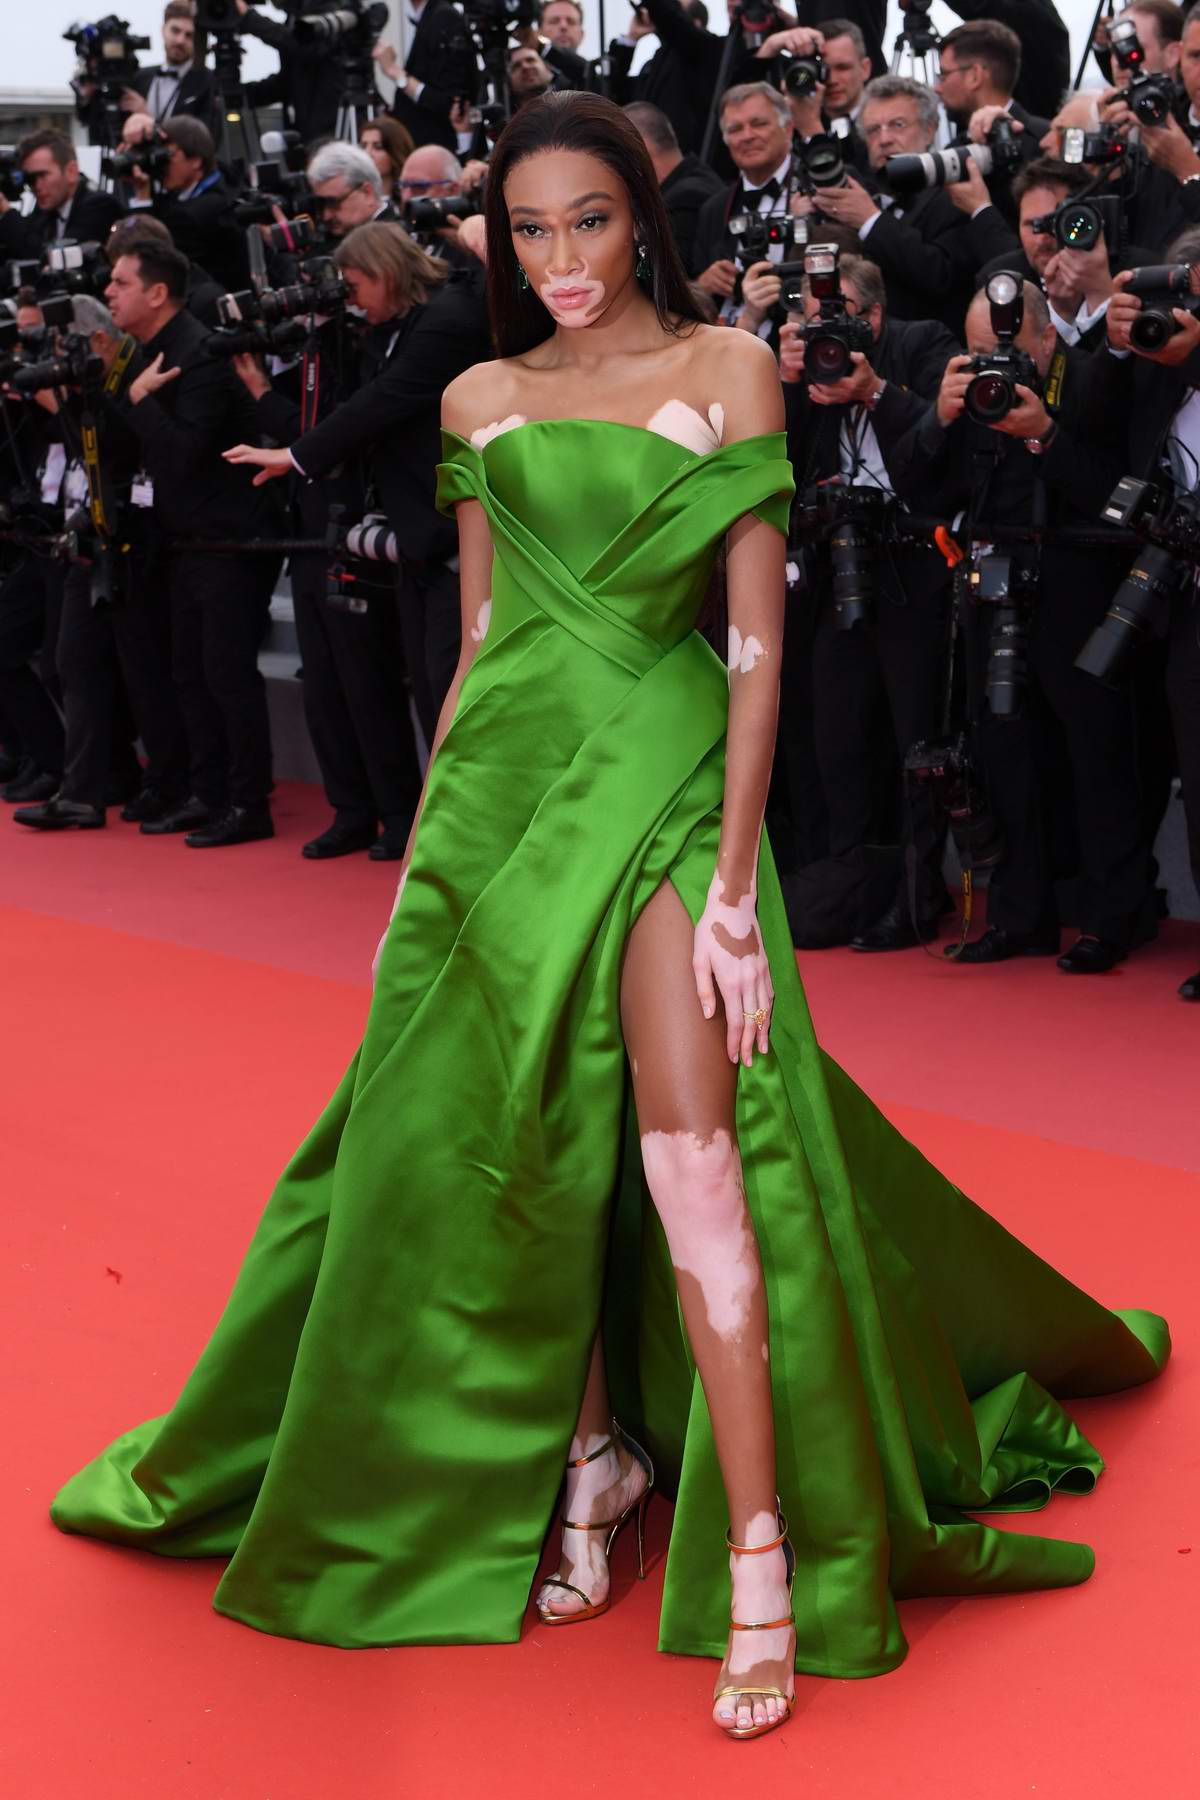 Winnie Harlow attends the 'BlacKkKlansman' premiere during 71st Cannes Film Festival in Cannes, France